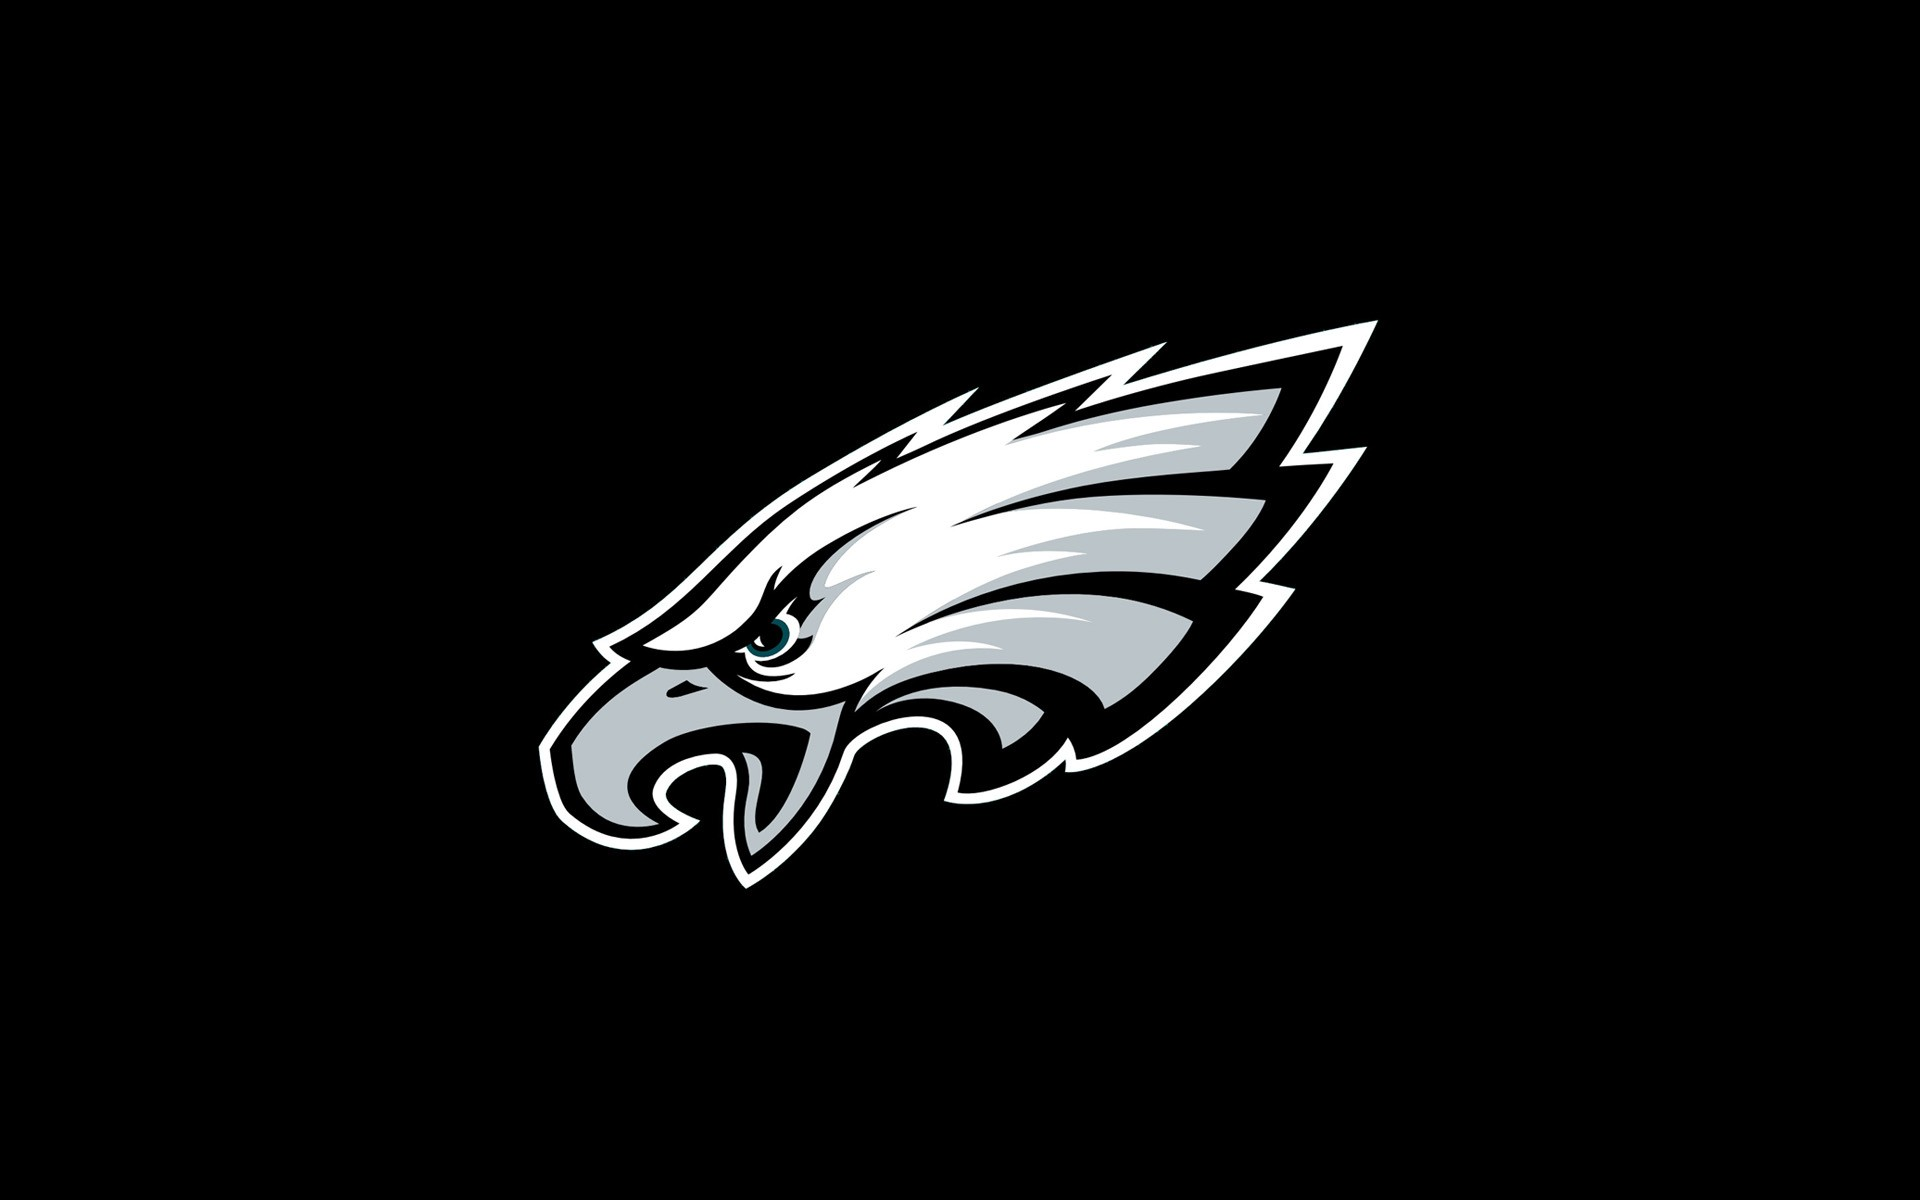 wallpaper eagles logo - photo #5